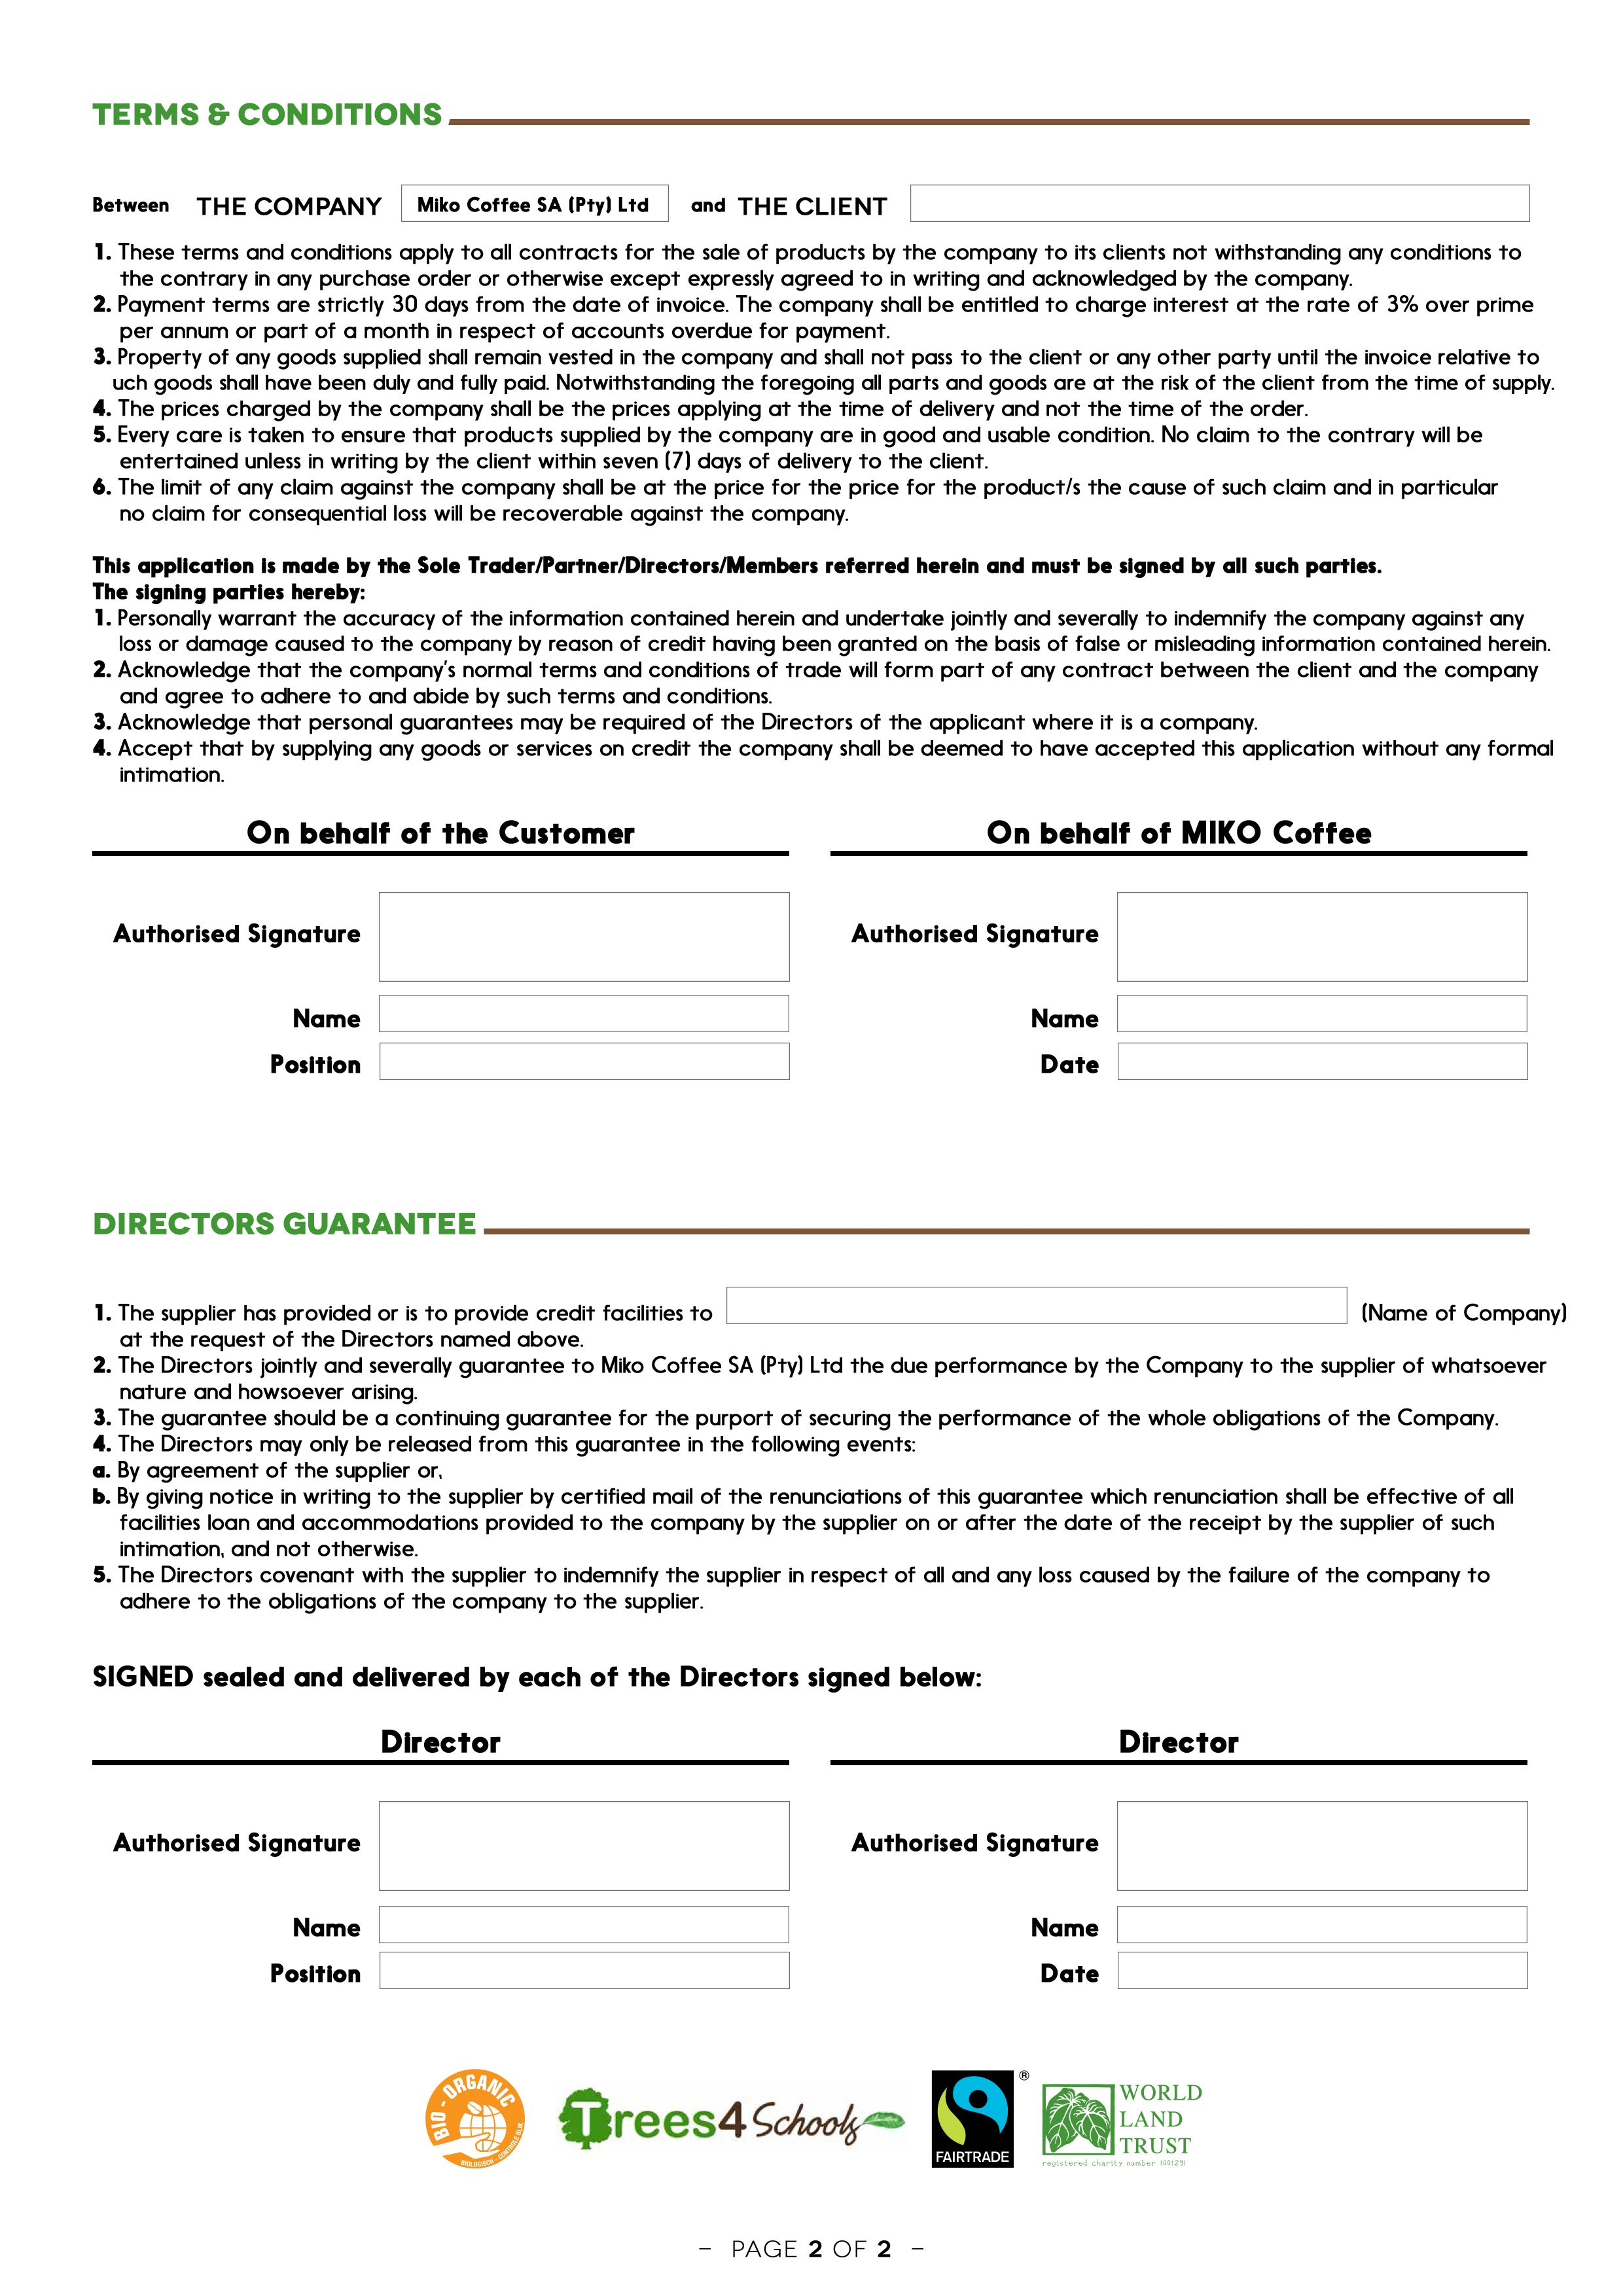 Credit Application Form For Miko Africa Back Page Kickasscoffee